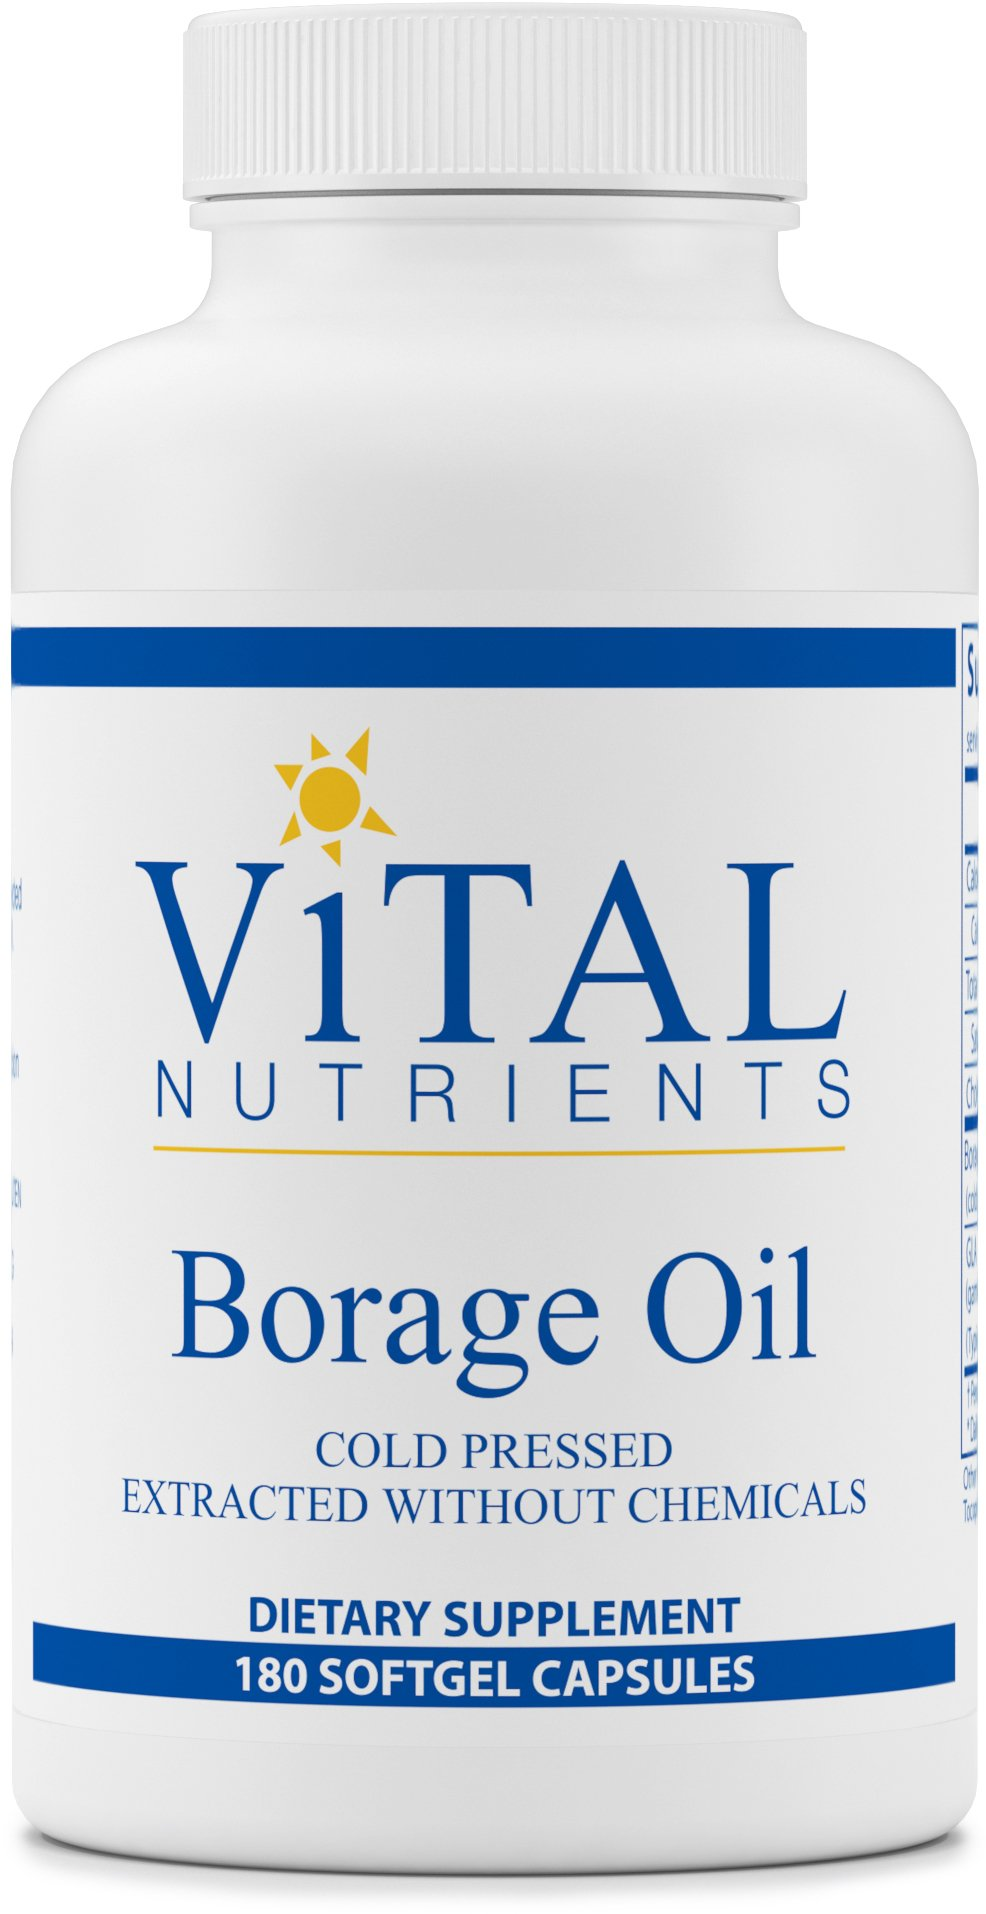 Vital Nutrients - Borage Oil - Cold Pressed Extracted Without Chemicals - Provides High Dose of GLA, an Essential Omega 6 Fatty Acid - 180 Softgel Capsules